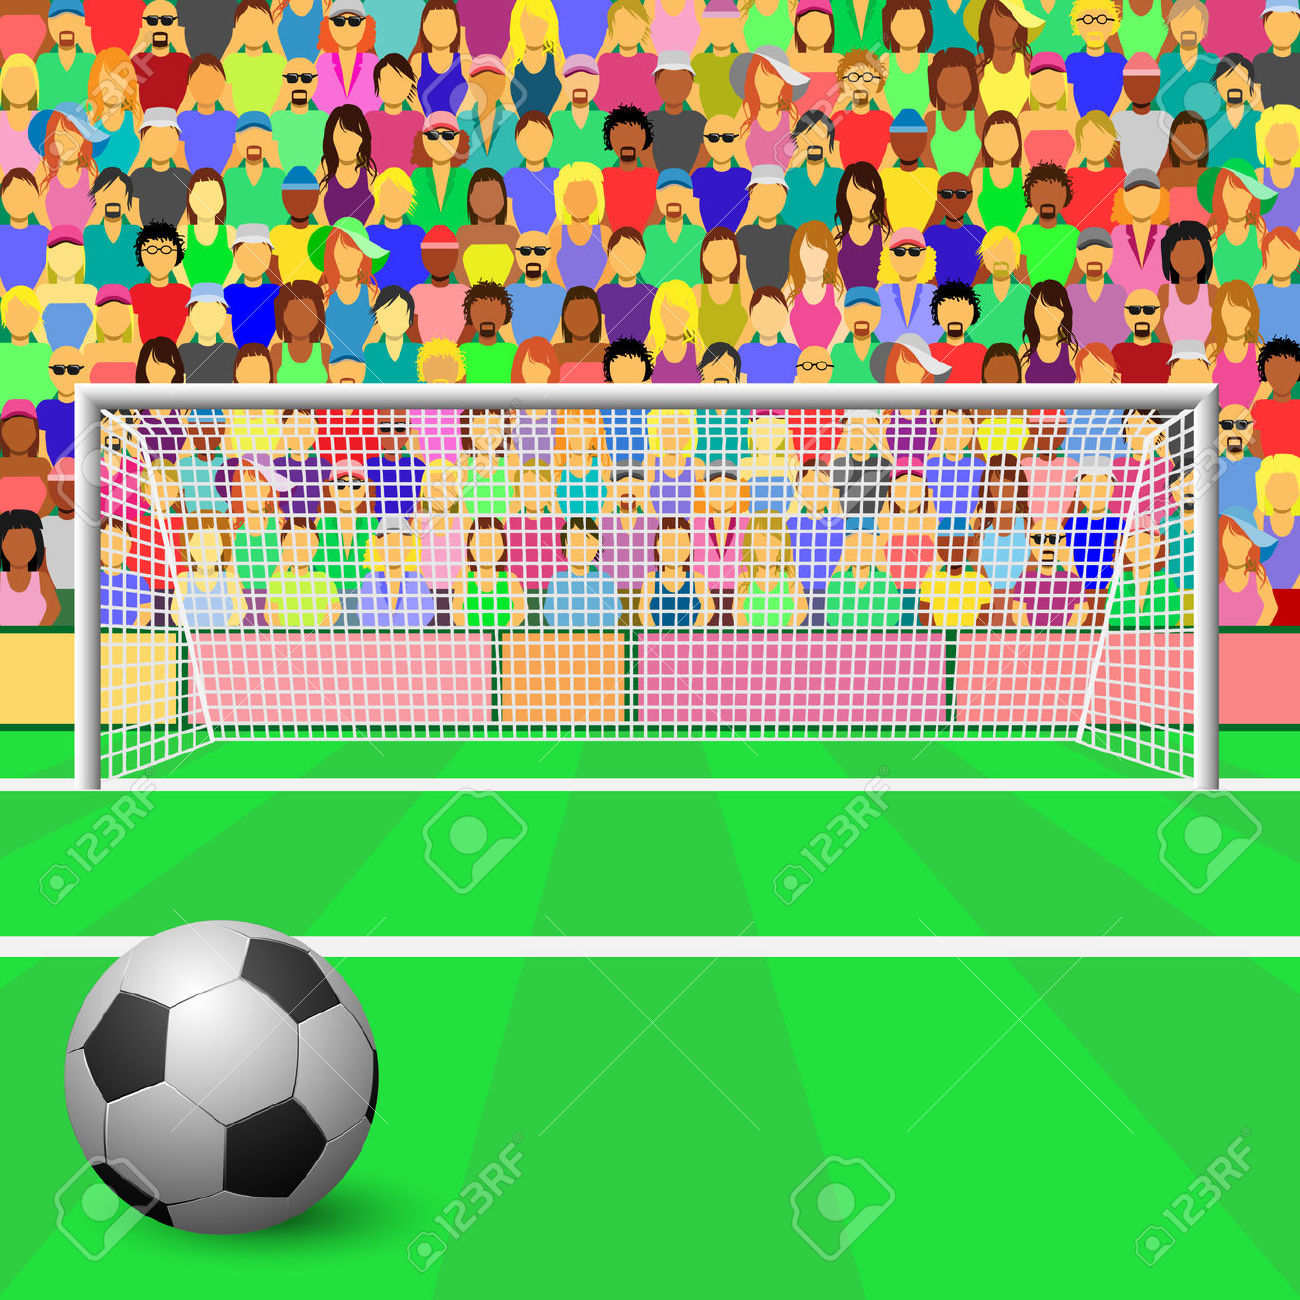 Stands clipart sport crowd Stadium Clipart cliparts Crowd Stadium